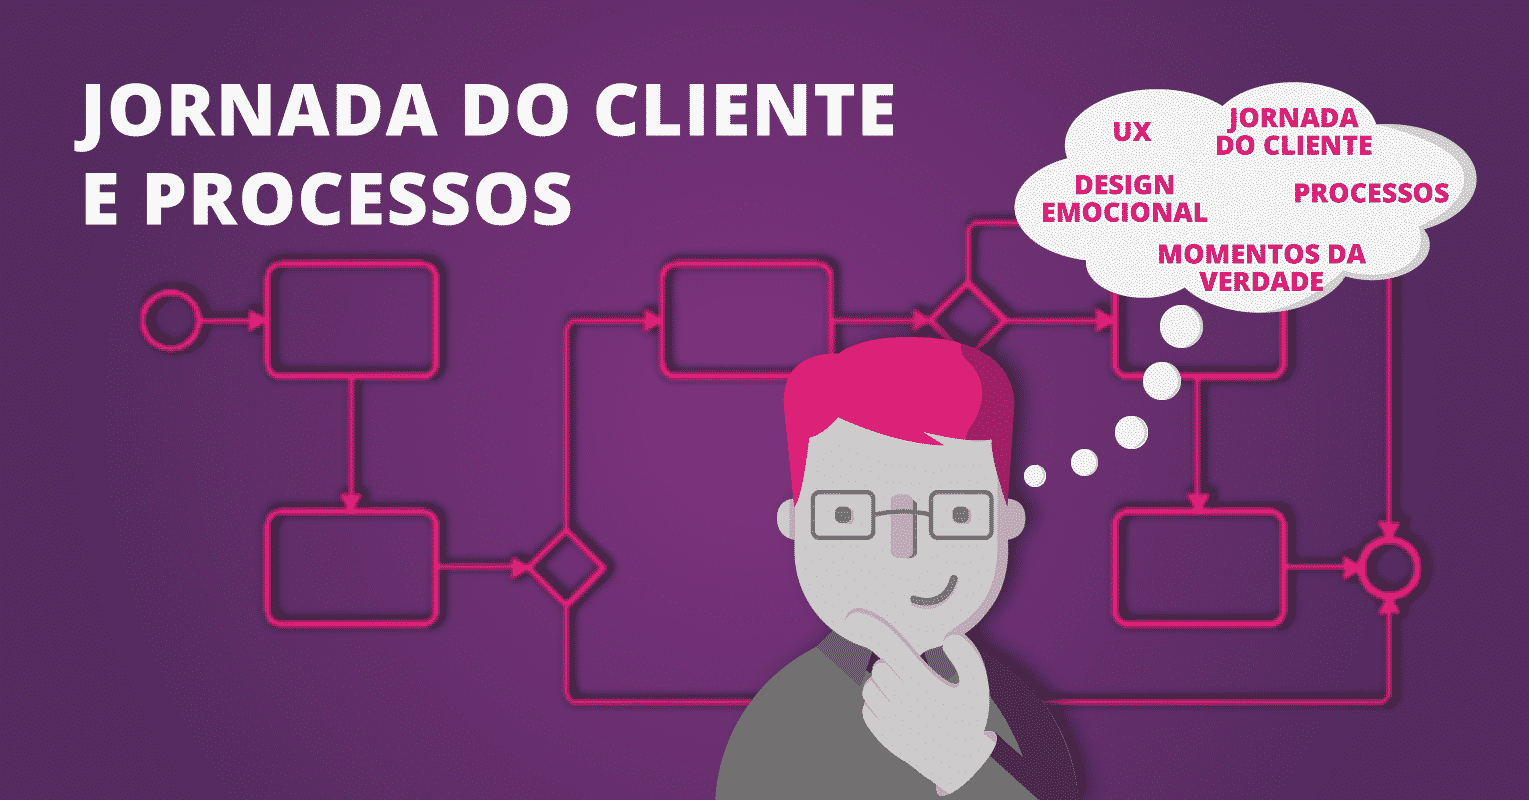 Jornada do cliente e processos